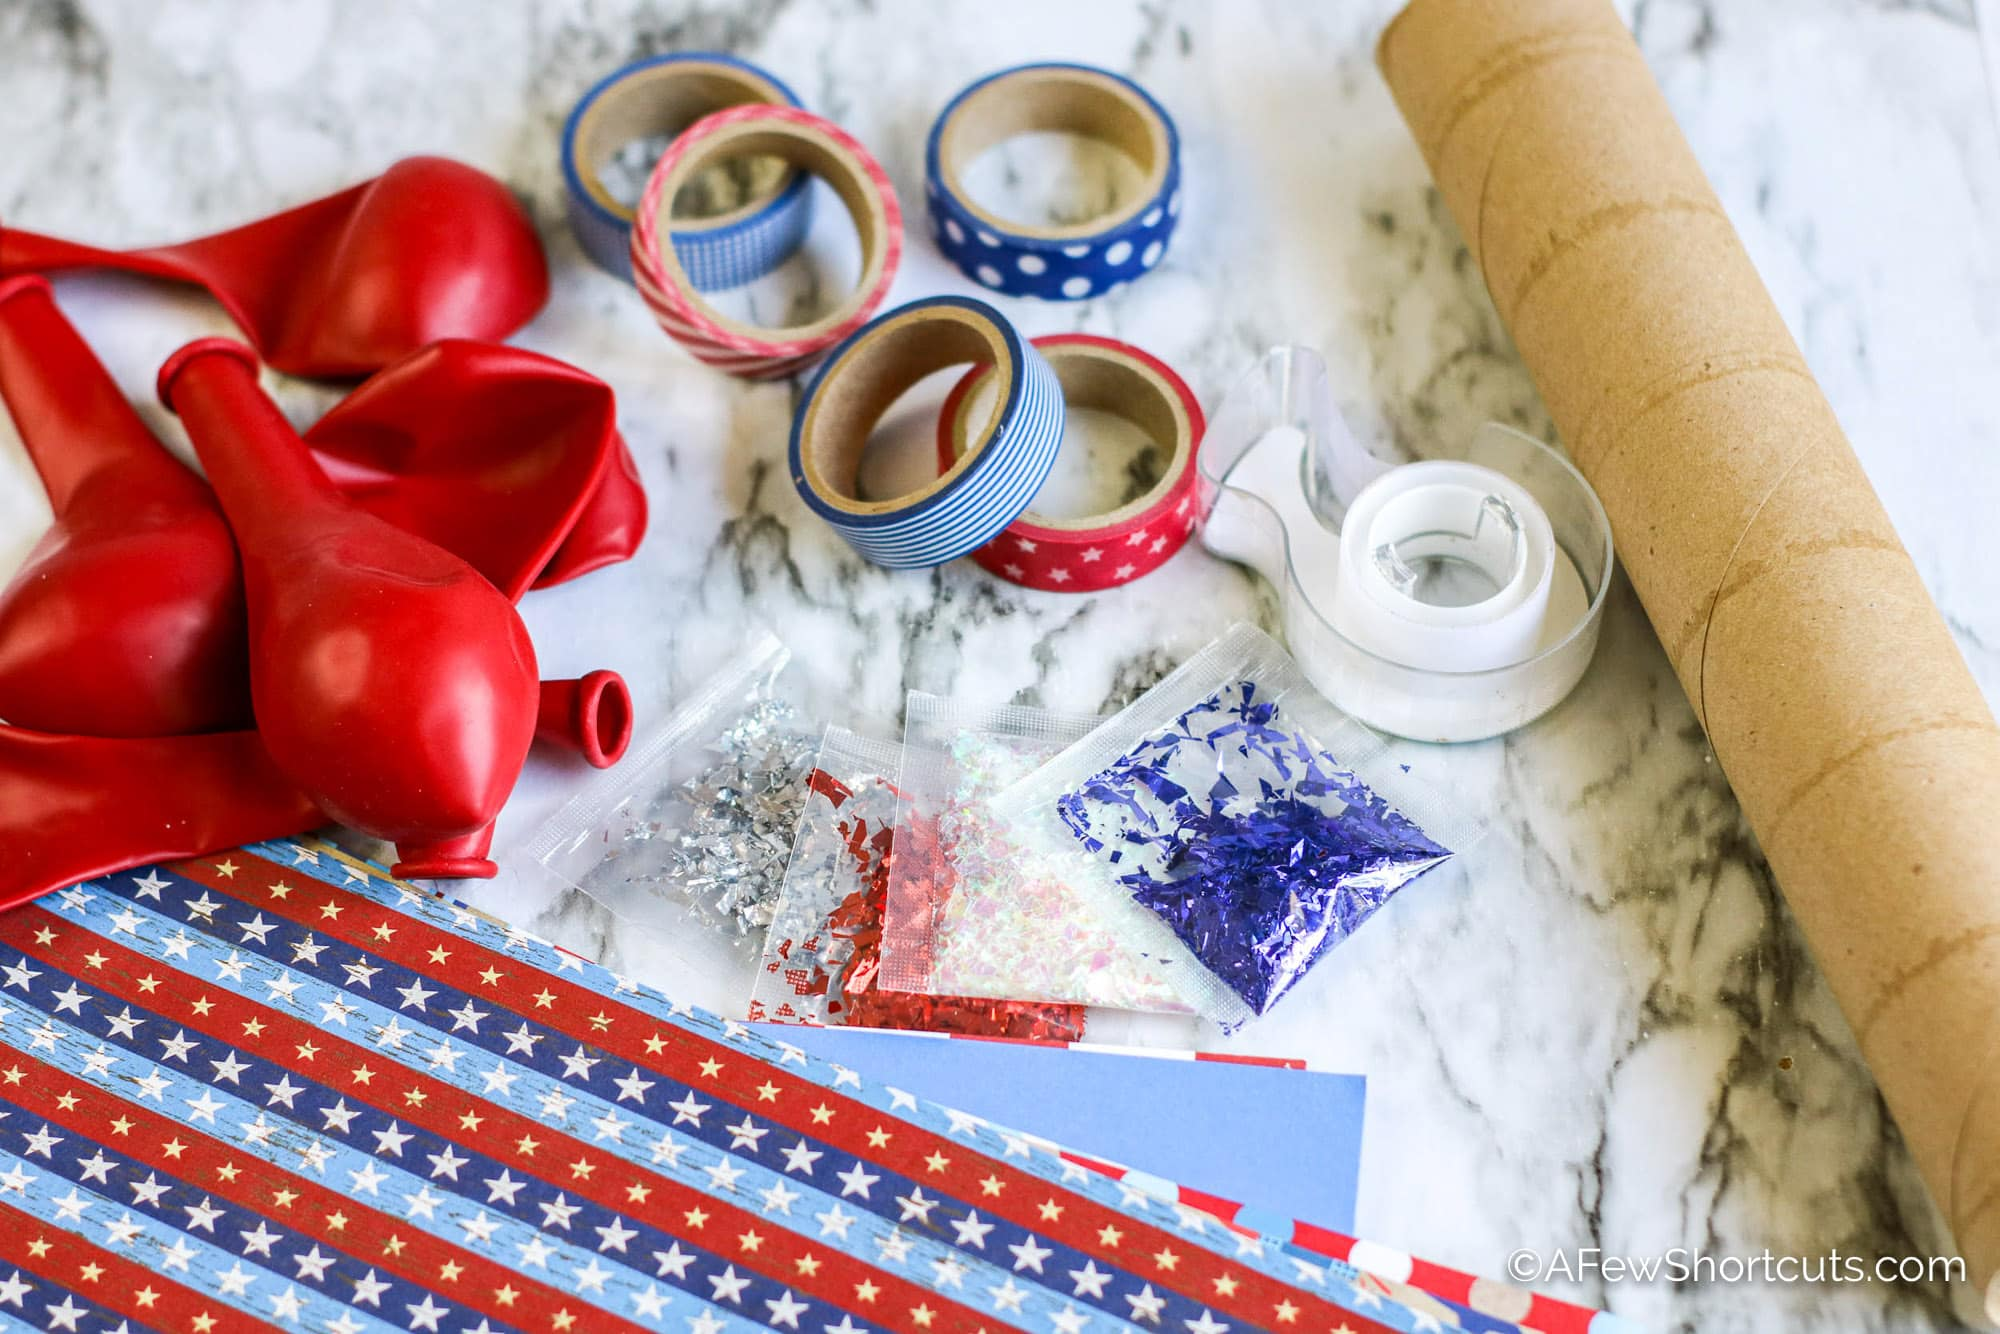 Red White and Blue Craft Supplies